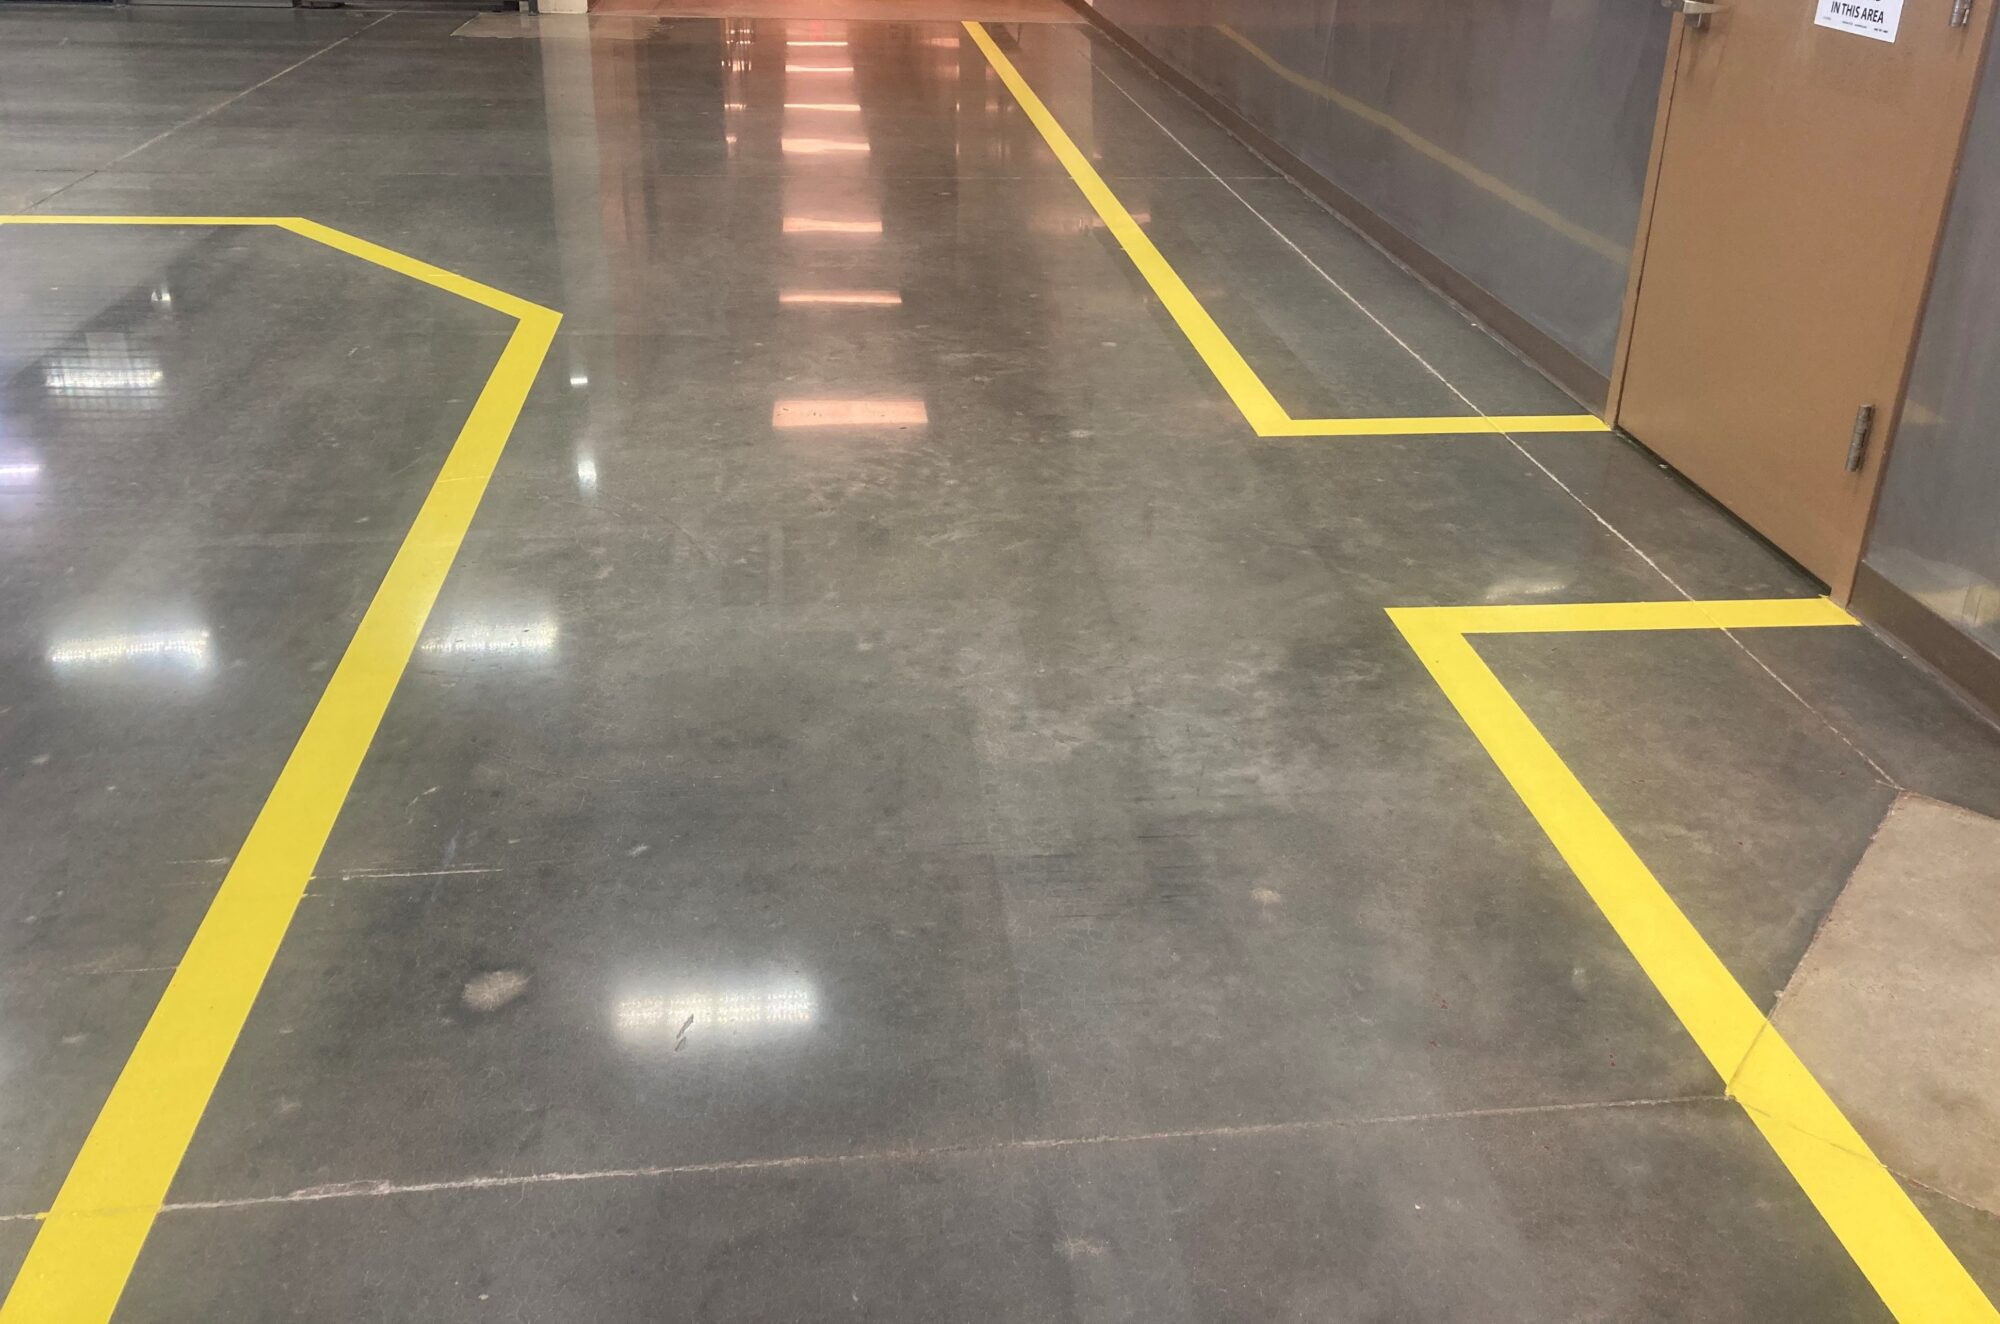 Safety striping, polished concrete, Polished concrete floors, industrial safety, pedestrian walkways in manufacturing, epoxy floor markings, 5S, TeamIA, Industrial Applications Inc, epoxy flooring solutions, flooring contractors Memphis TN, Memphis TN